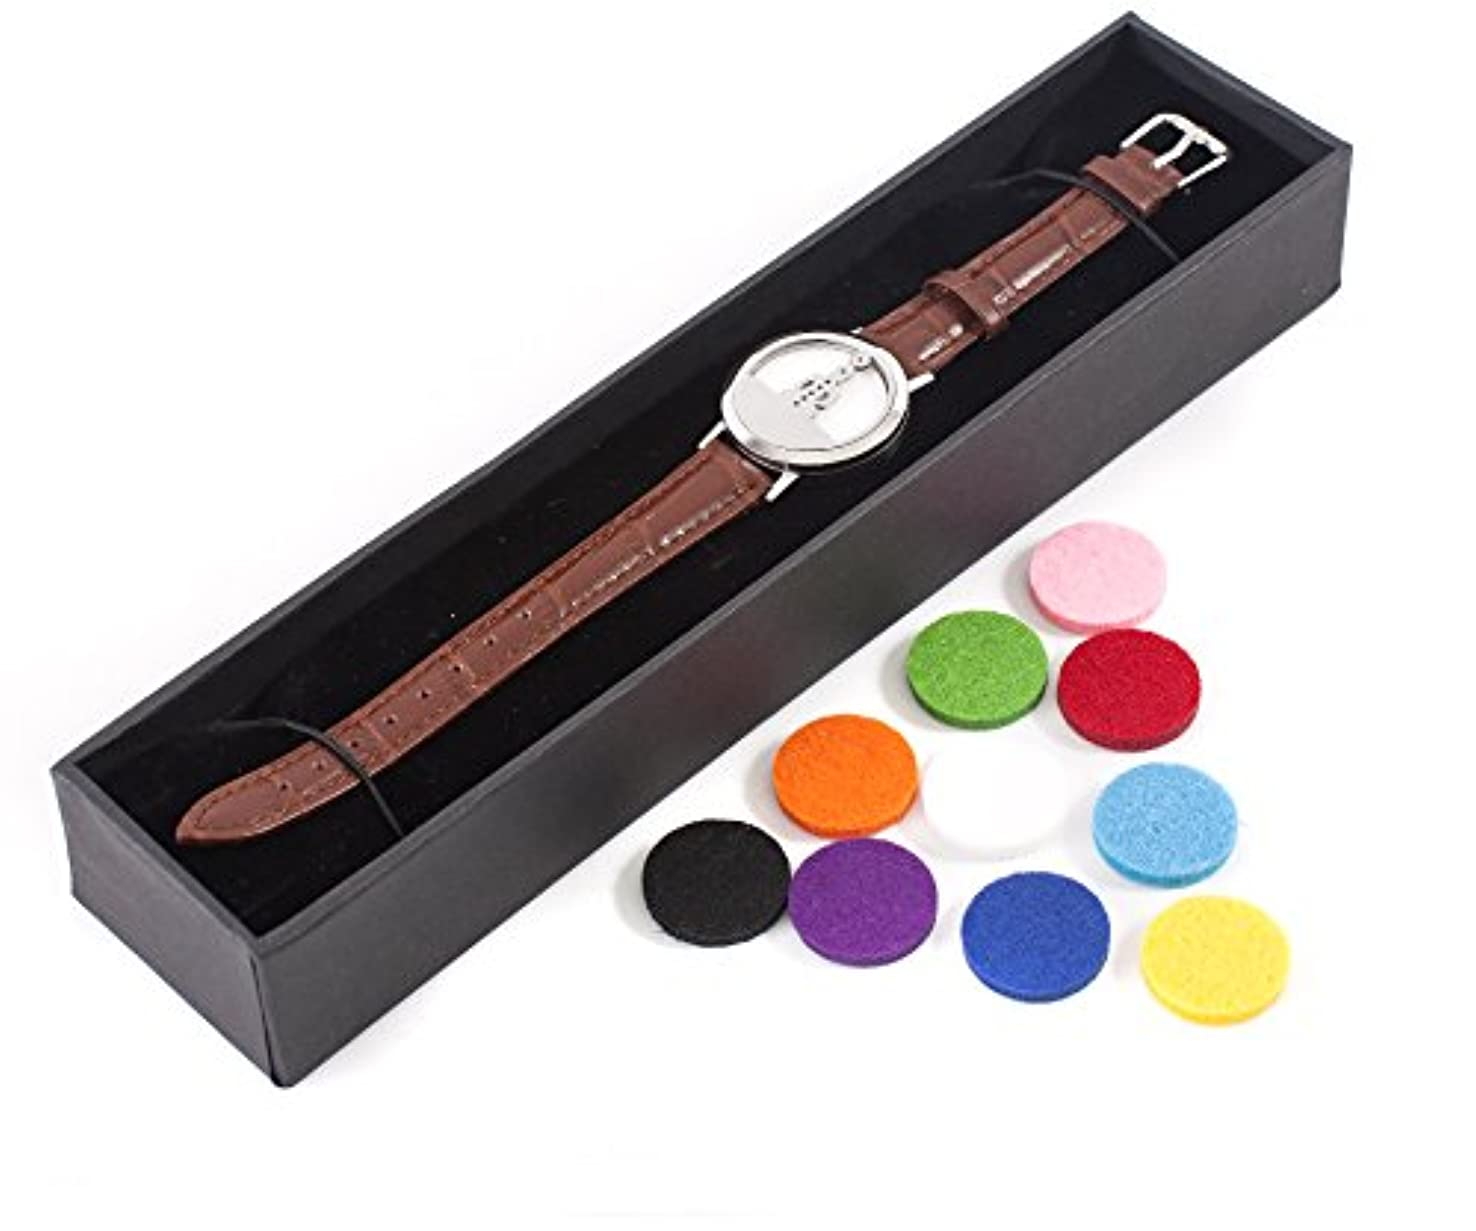 パスタ大きさ聖職者Mystic Moments | Seven Chakras | Aromatherapy Oil Diffuser Bracelet with Adjustable Brown Leather Strap